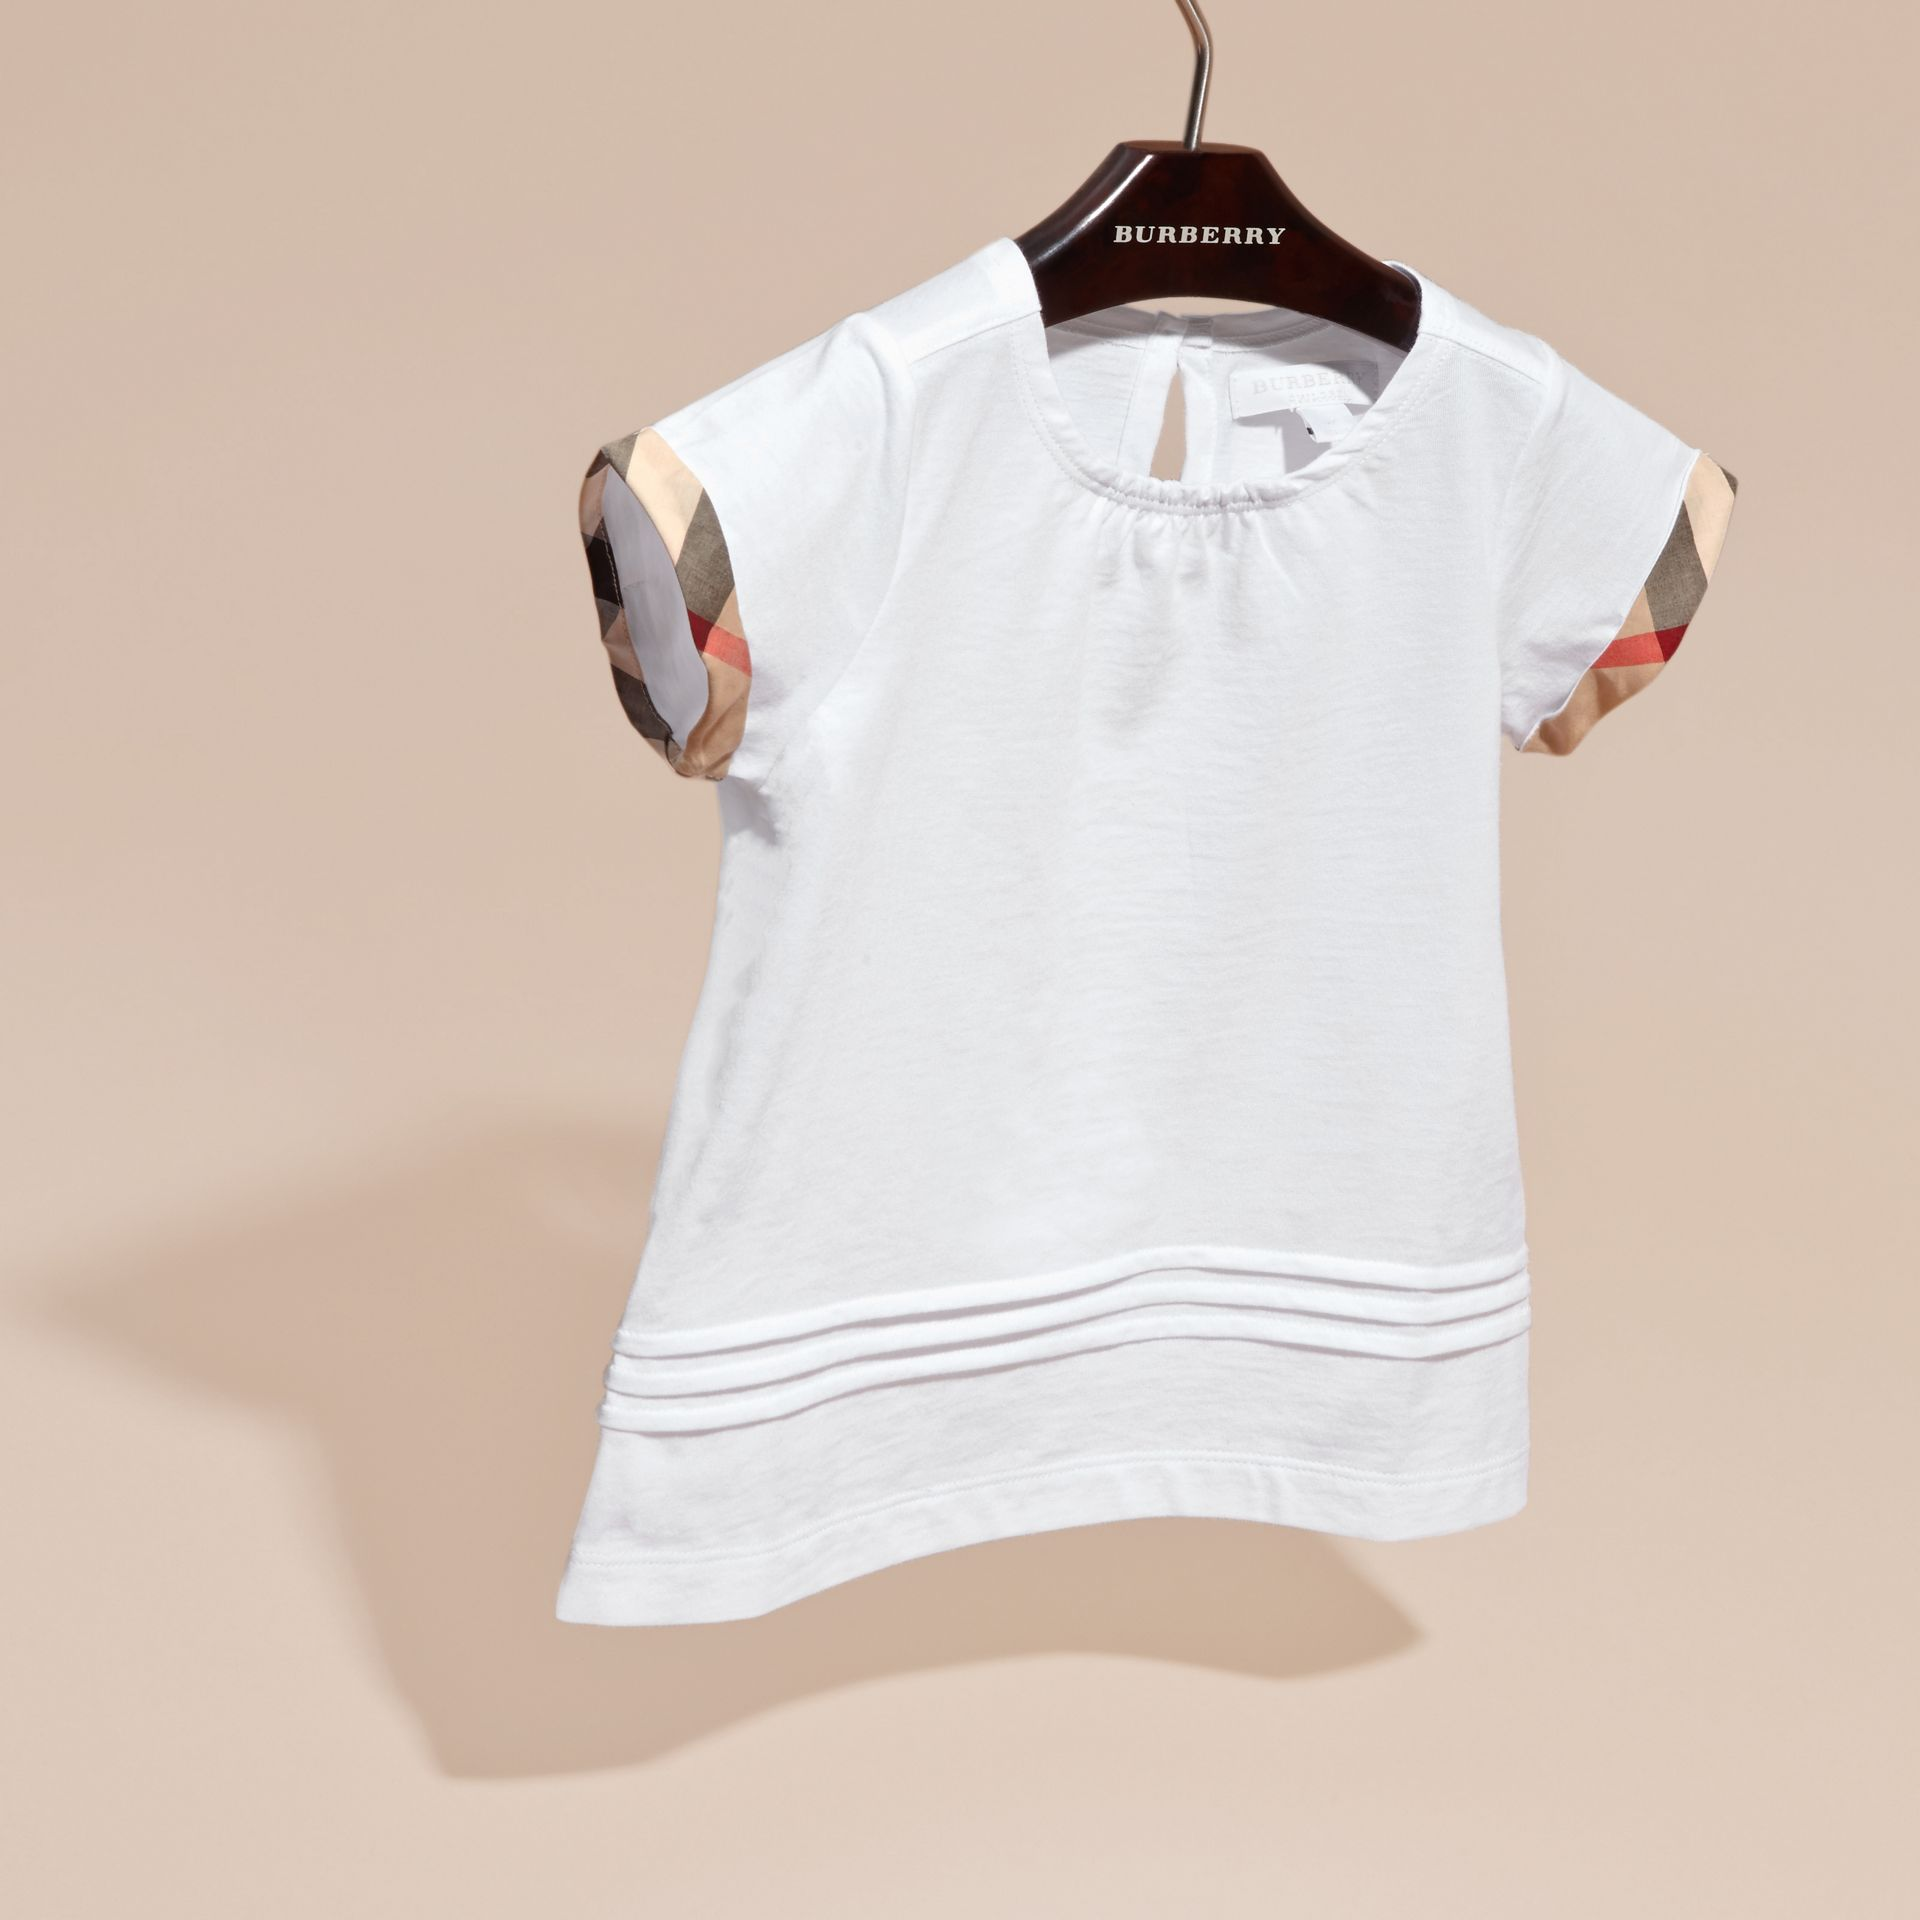 White Pleat and Check Detail Cotton T-shirt White - gallery image 3